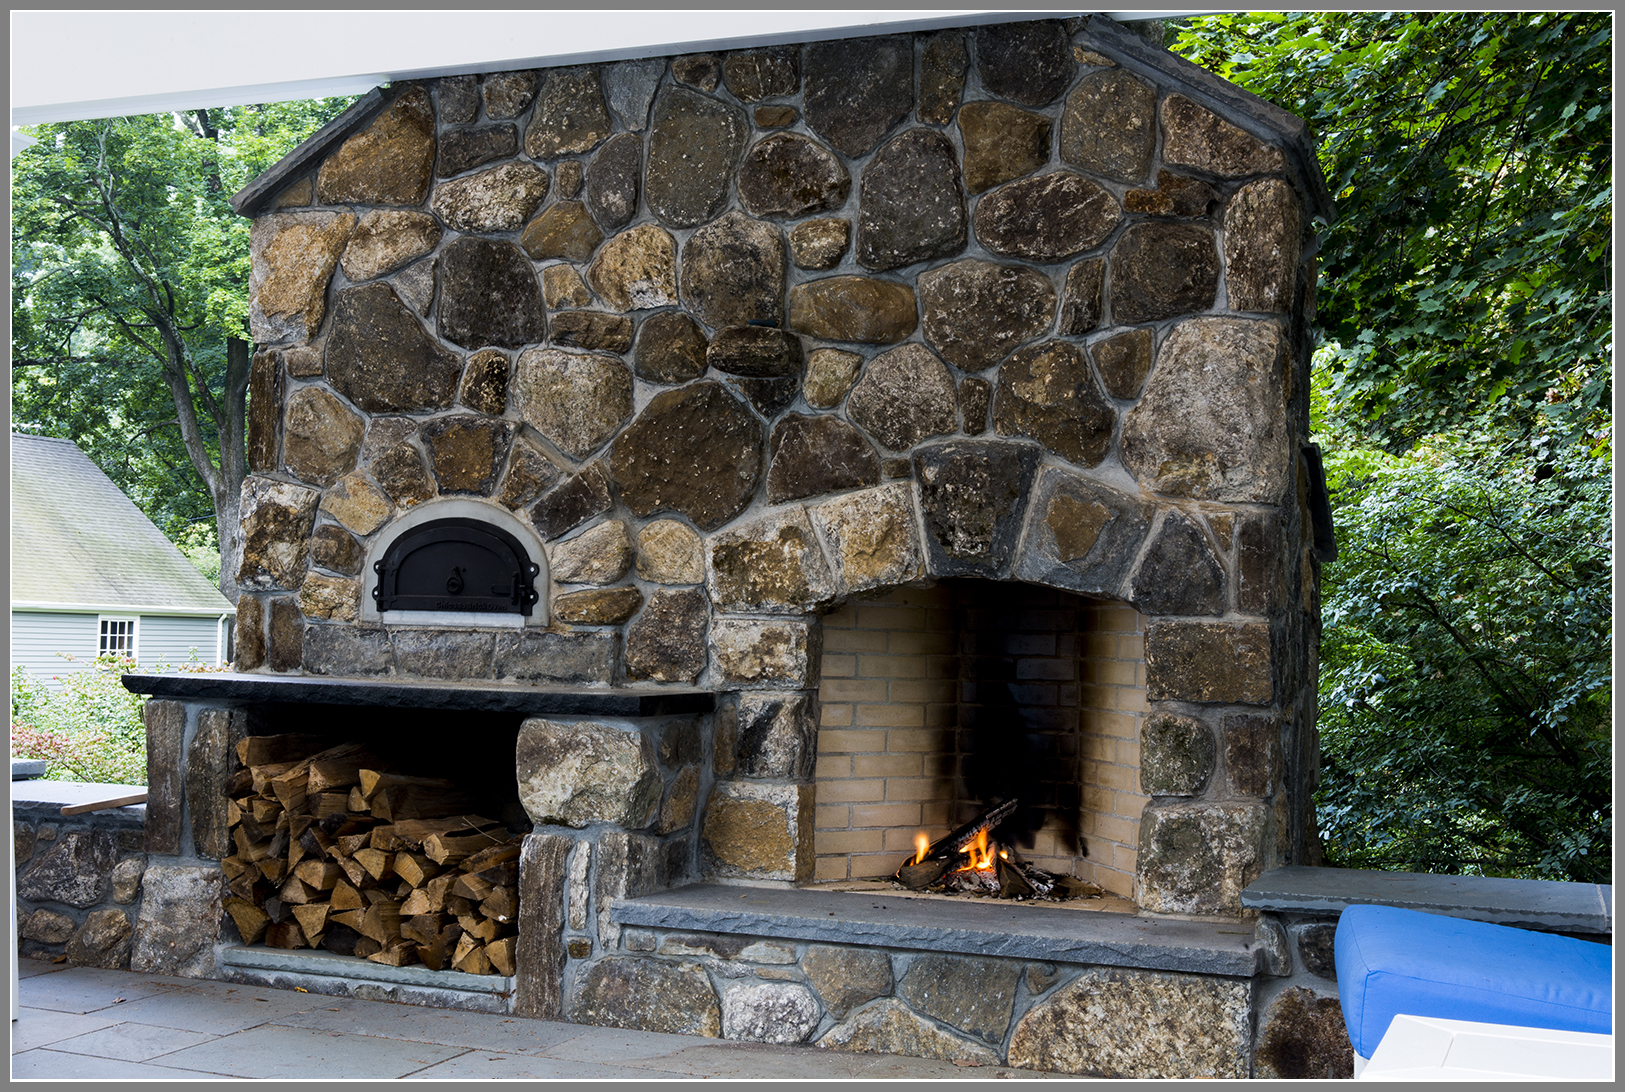 Wood Burning Pizza Oven and Outdoor Fireplace